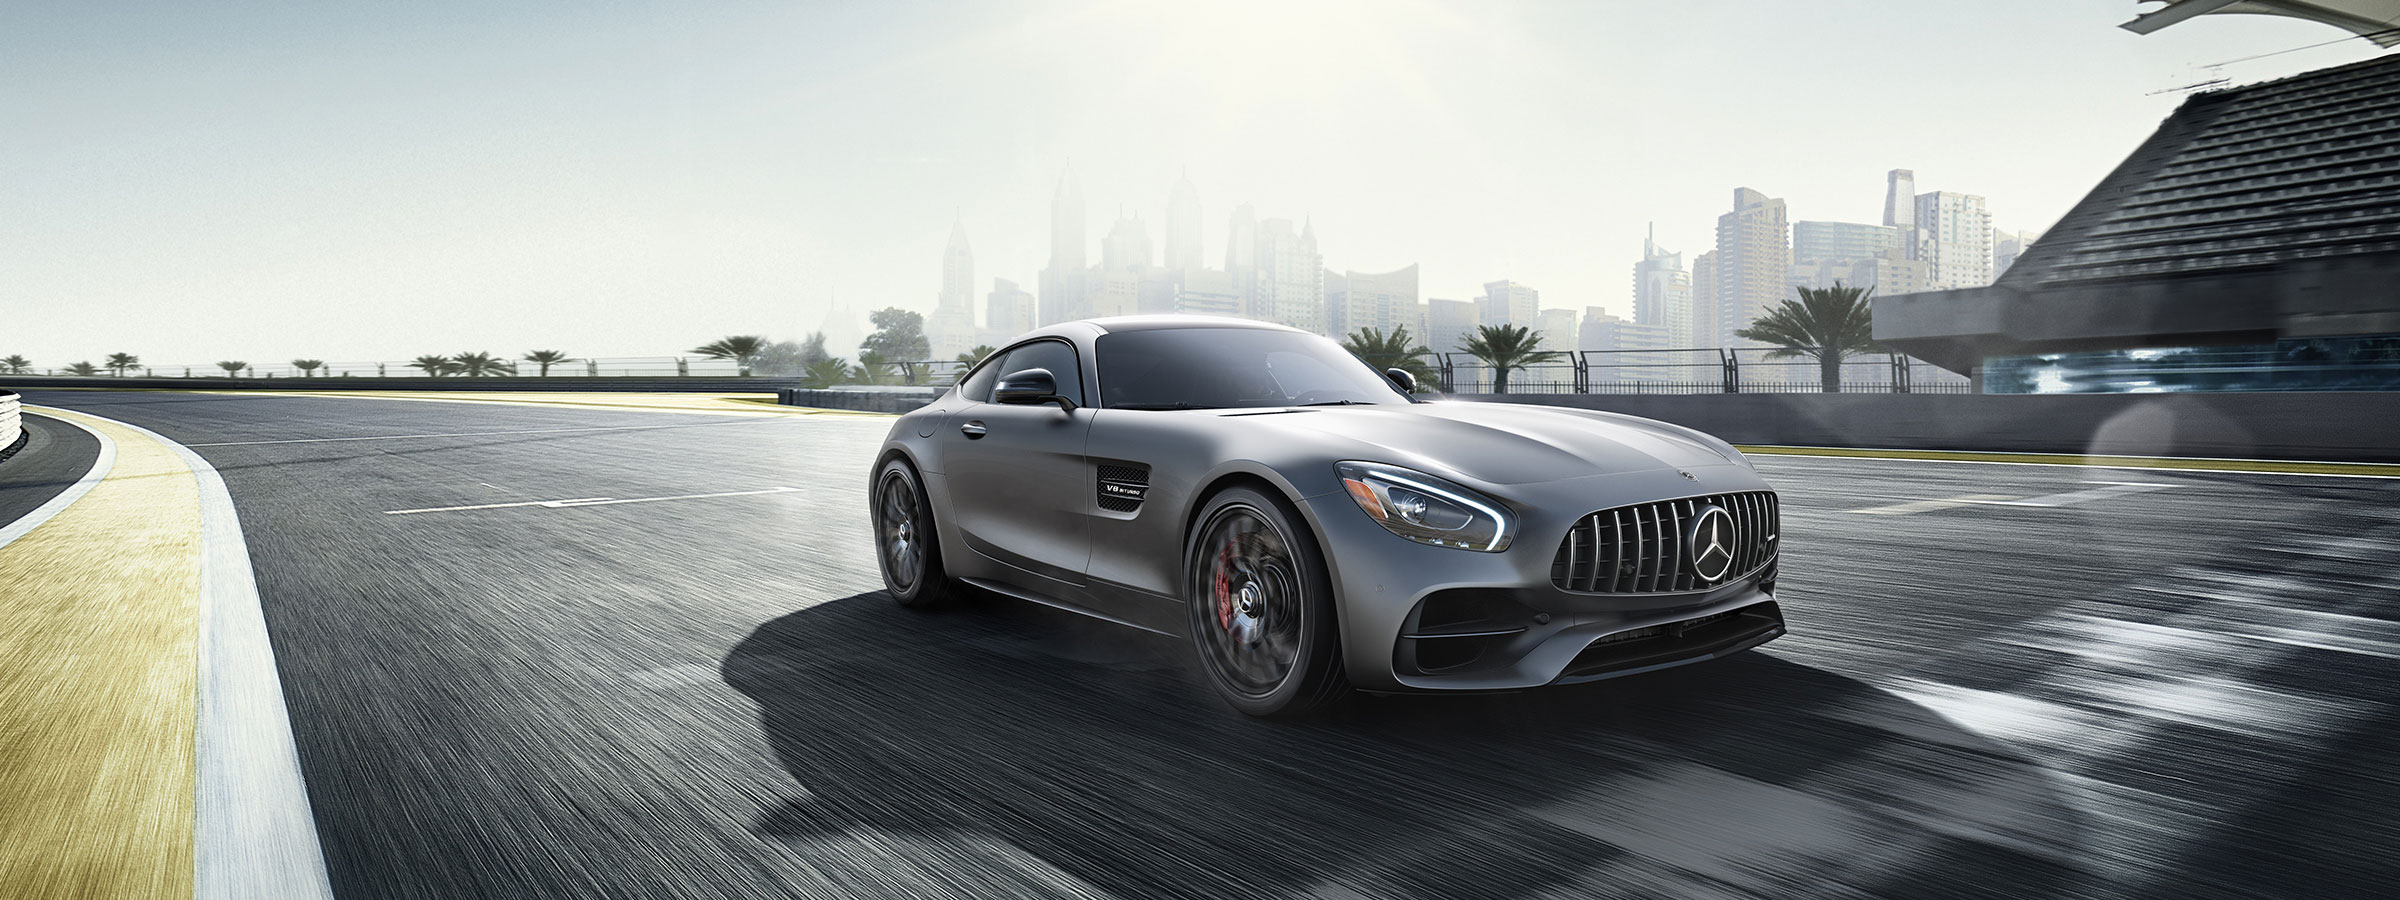 Mercedes Amg 2018 Mercedes Amg High Performance Gt C Coupe Sports Car